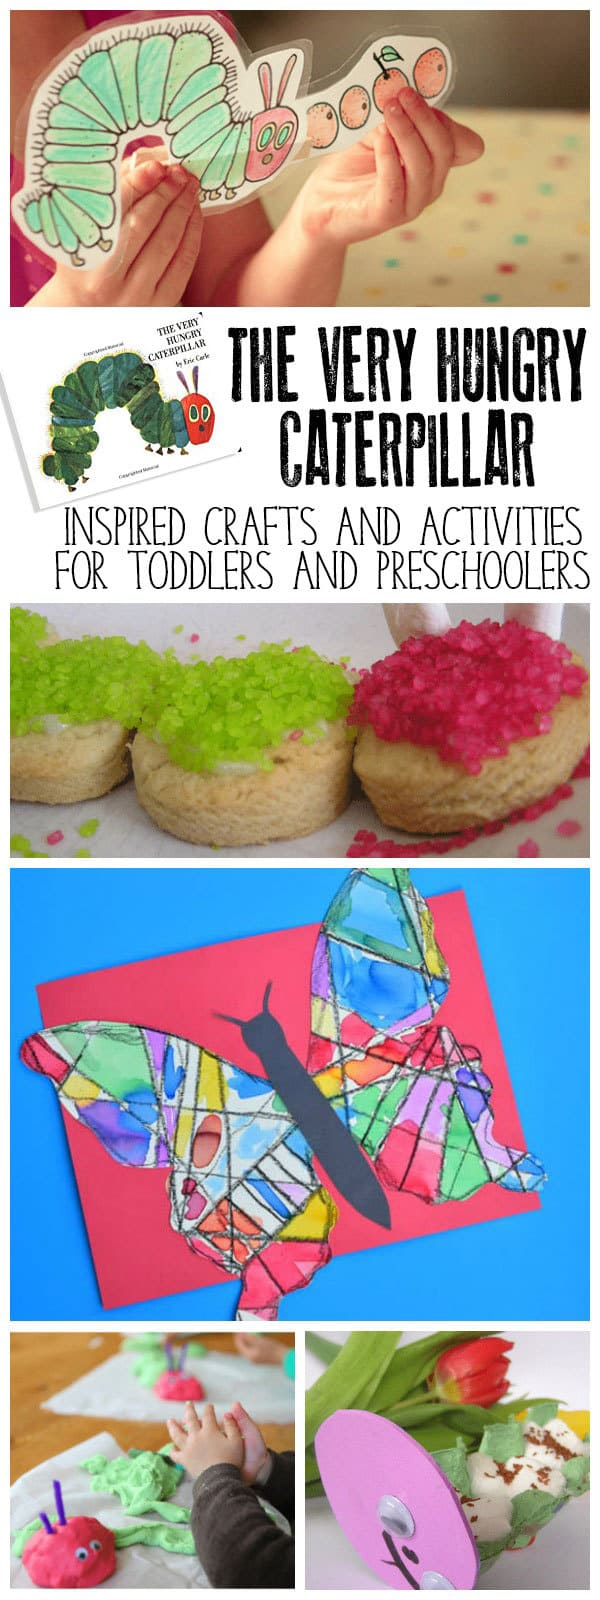 Fun Crafts And Activities For Toddlers Preschoolers Based On The Classic Eric Carle Book